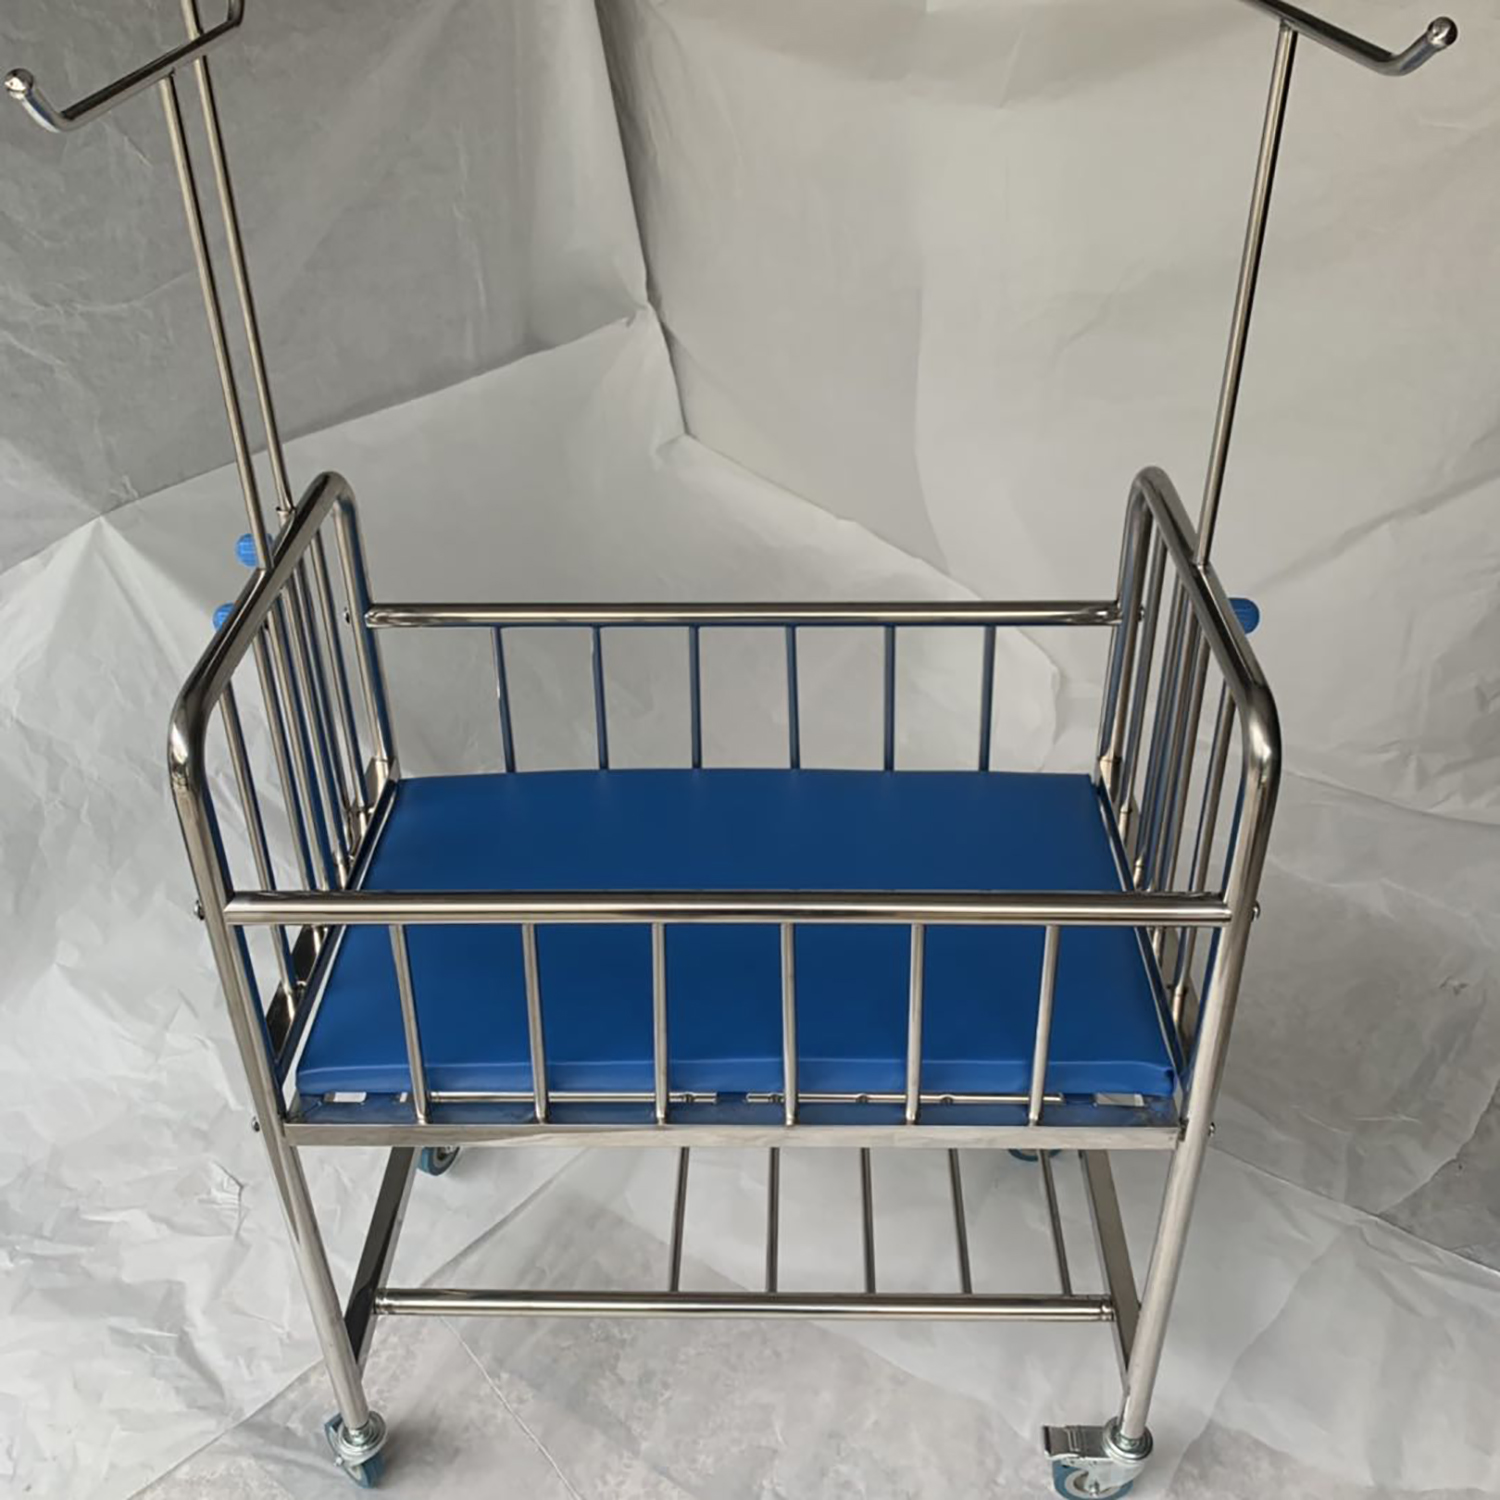 Hot Sale Mkr Bb 001 Cheap Baby Bed With Castors Buy Mkr Bb 001